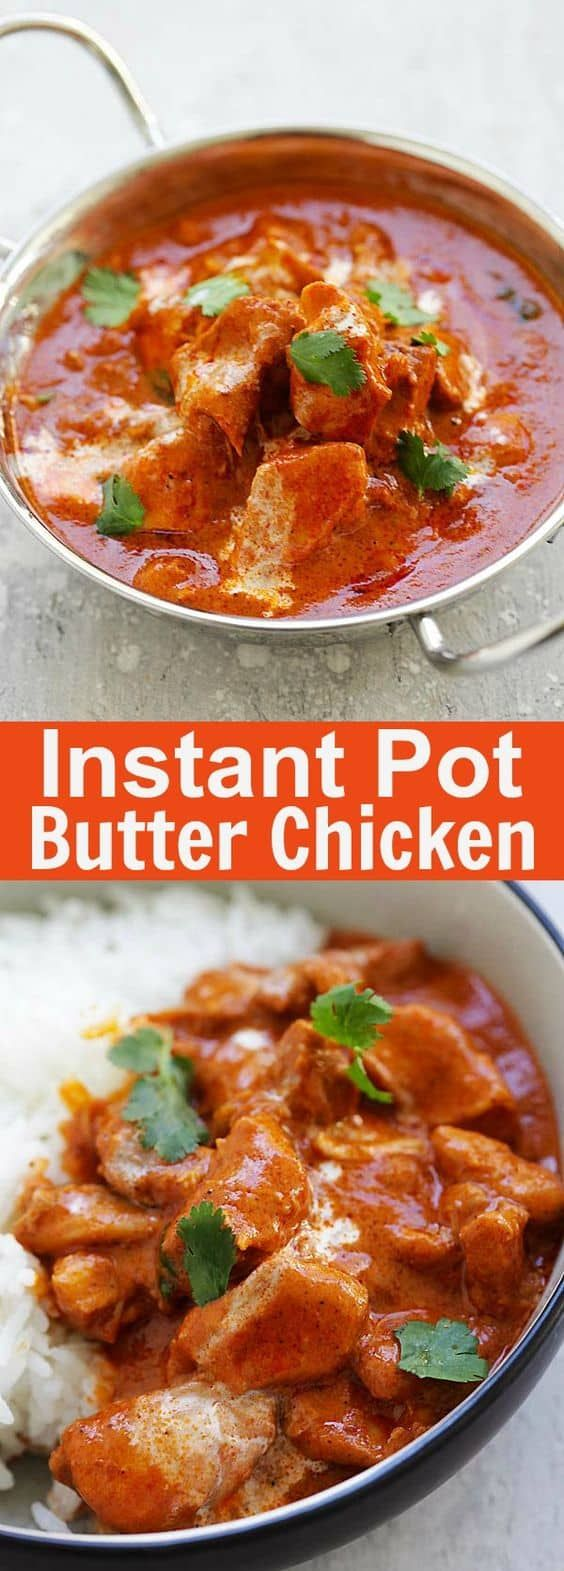 Instant Pot Butter Chicken - the best Indian butter chicken recipe with rich, creamy and delicious tomato butter chicken sauce. This easy recipe takes only 10 minutes   rasamalaysia.com